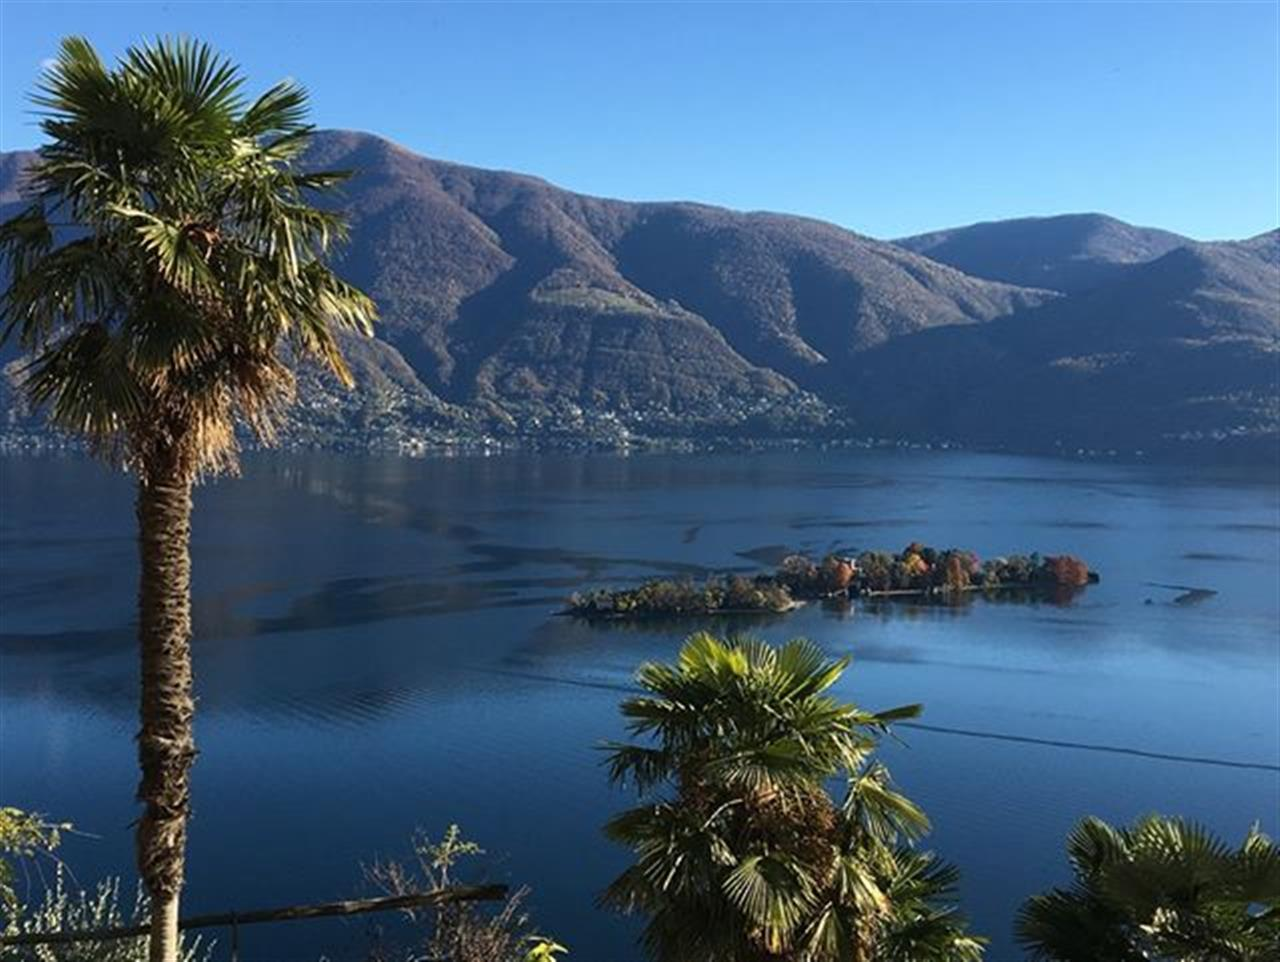 Autumn view to #LakeMaggiore, #Ticino, #Switzerland. #luxuryrealestate #inlovewithswitzerland #luxurylife #luxurylifestyle #christiesinternationalrealestate #luxuryportfolio #wetagconsulting #leadingre #ChristiesHomes #LeadingRElocal